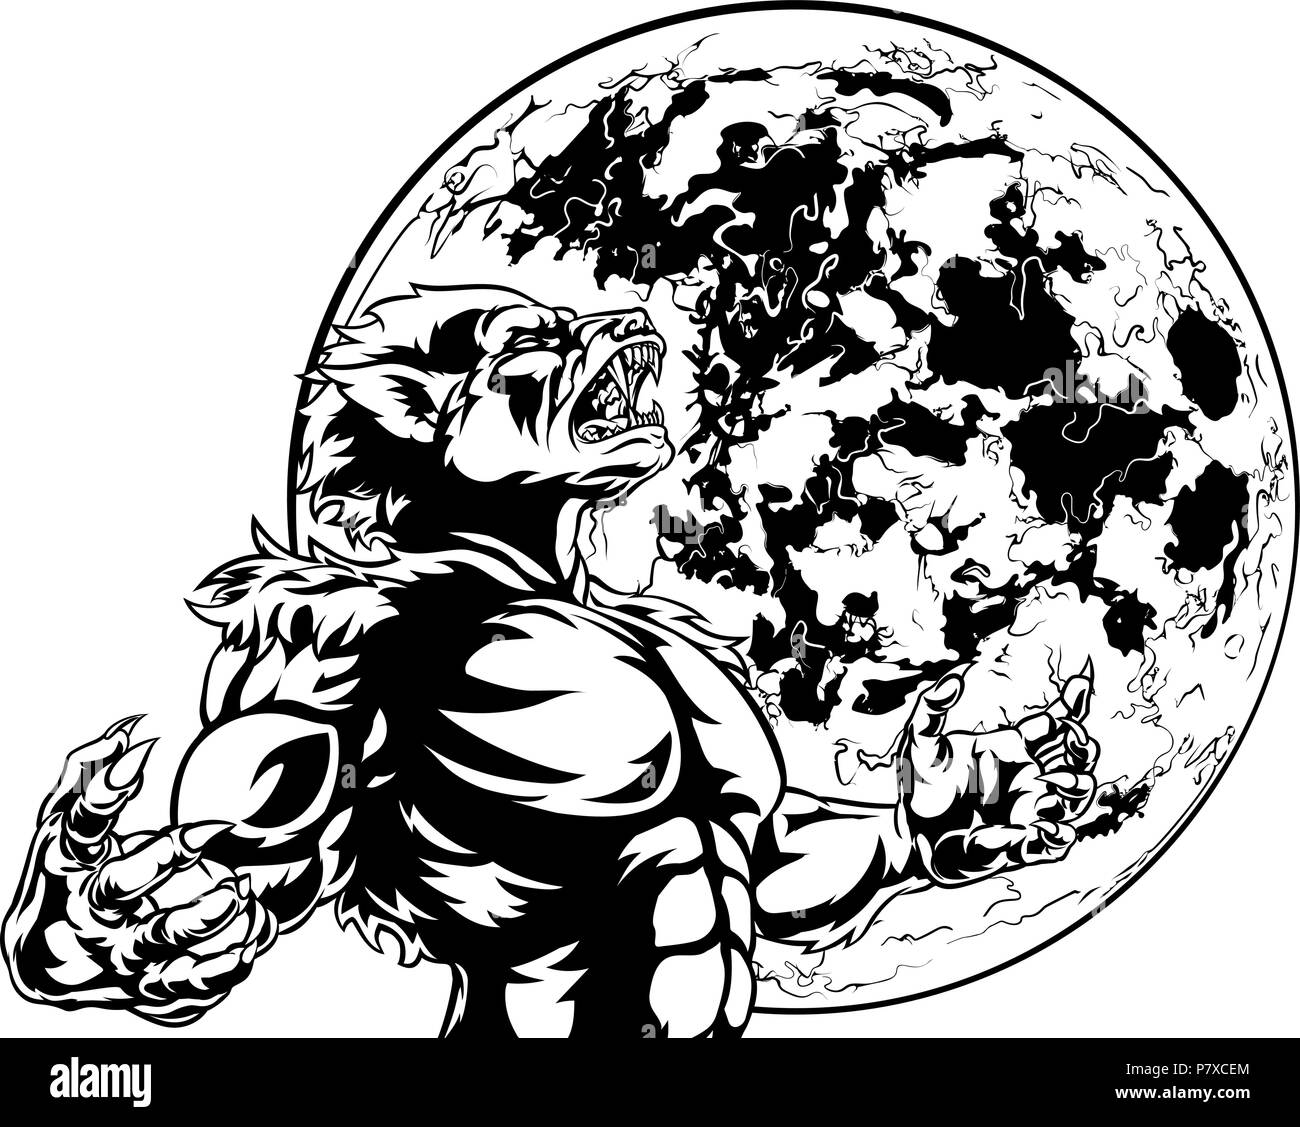 Full Moon Drawing Black And White Full Moon Werewolf Scary Monster Stock Vector Art Illustration